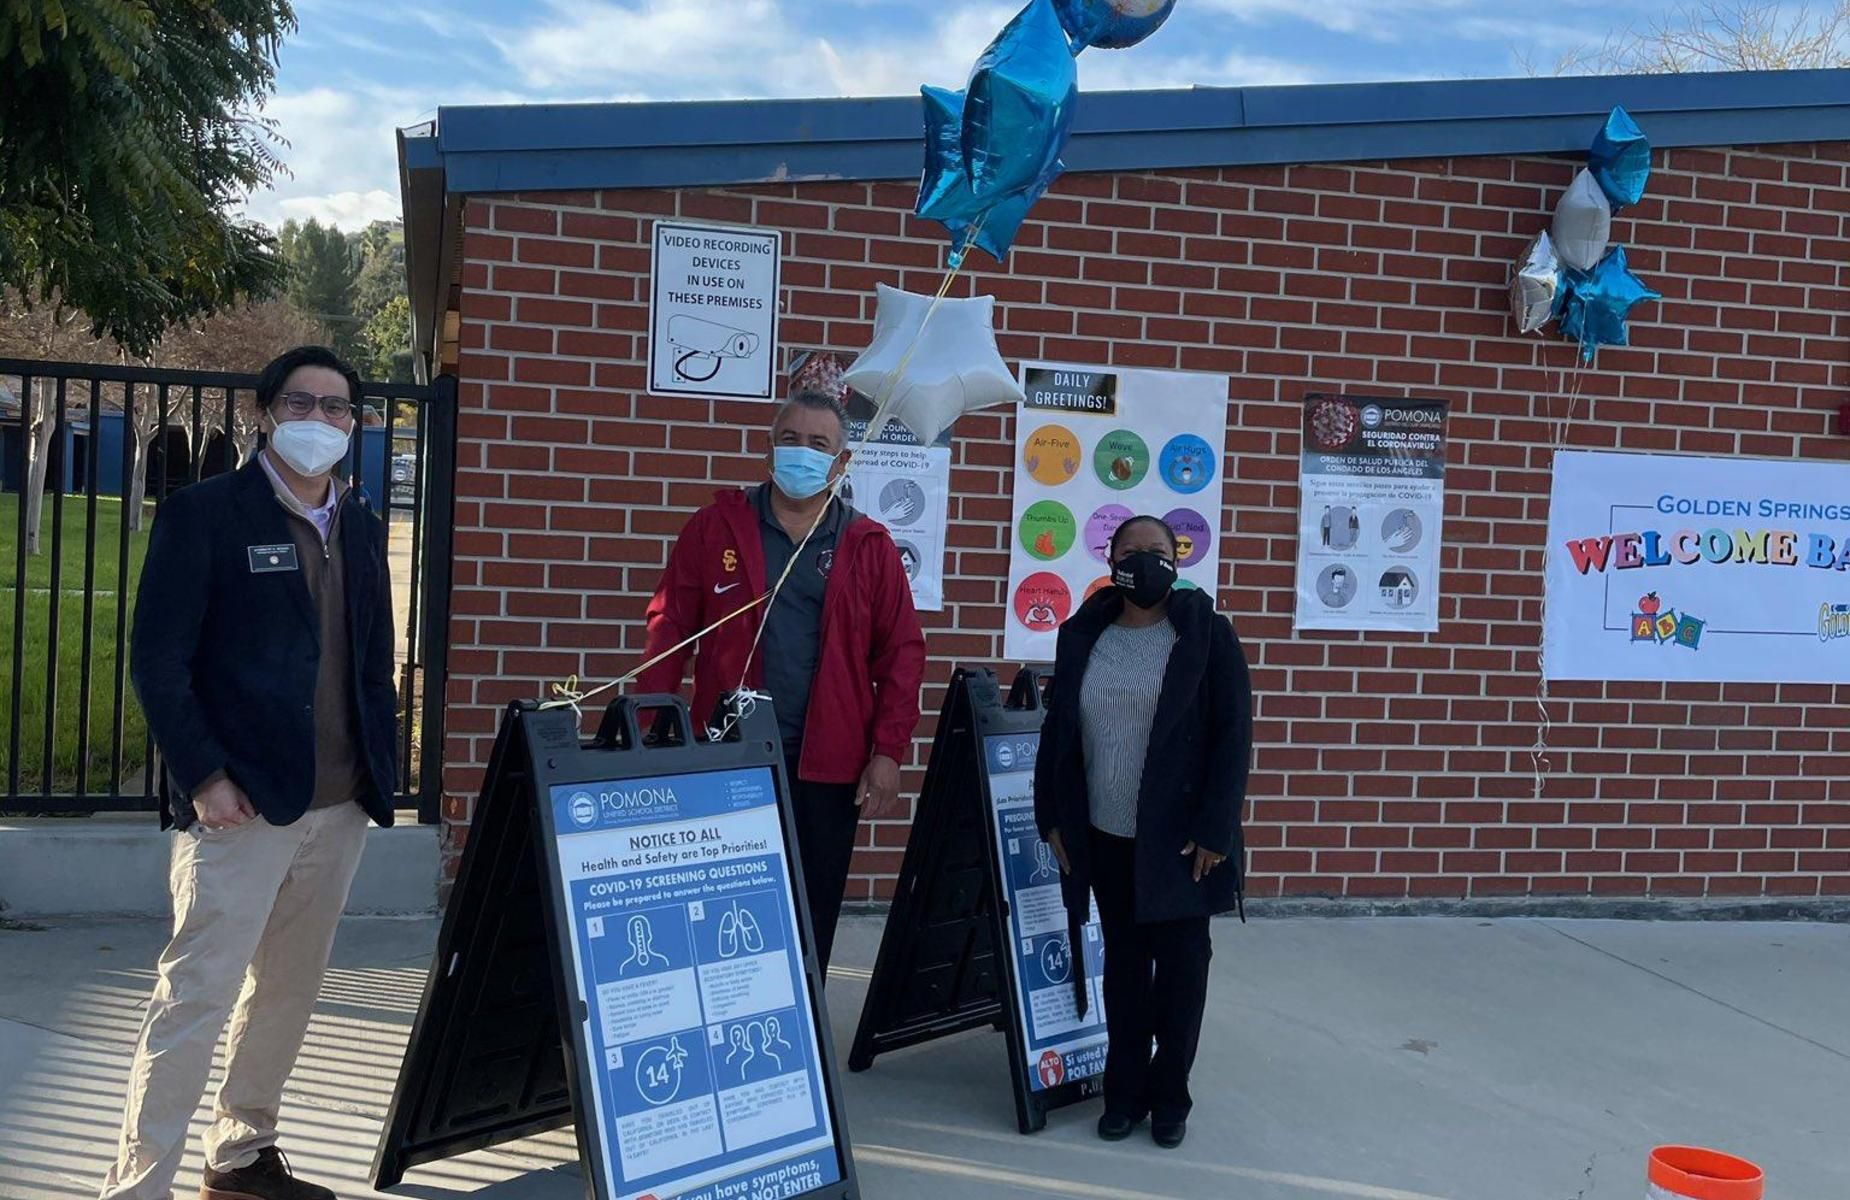 Golden Springs Cougars were warmly greeted by Principal Tamatha Damato, Board of Trustees President Andrew Wong, and Superintendent Richard Martinez. Shoutout to our Campus Supervisors for your heroic support. #proud2bepusd @goldenSprinPUSD